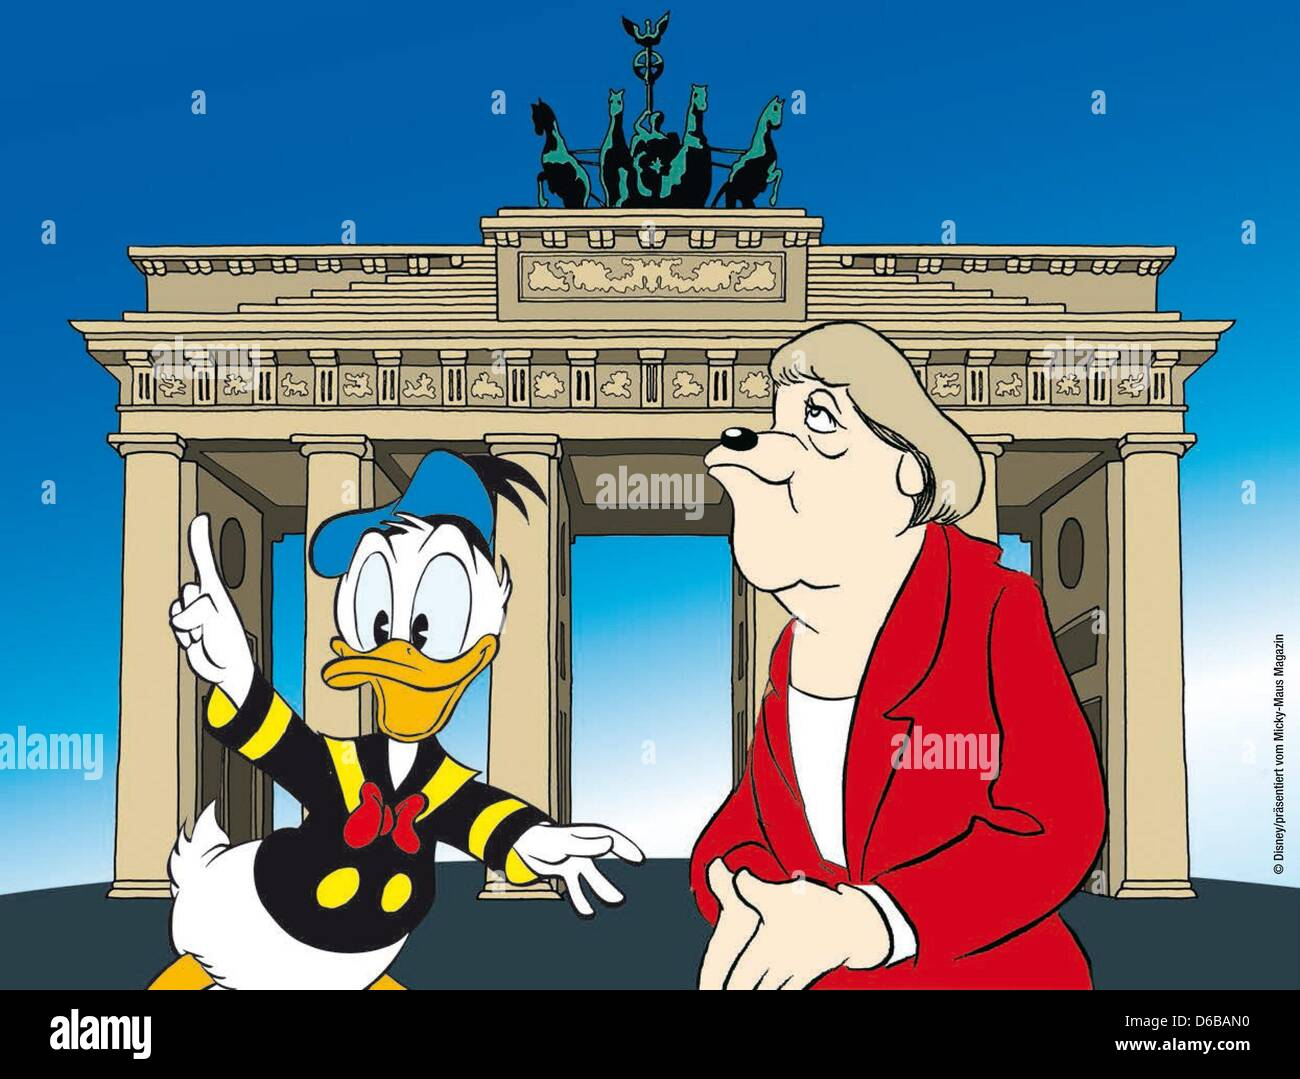 handout-an-undated-handout-shows-german-chancellor-angela-merkel-r-D6BAN0.jpg